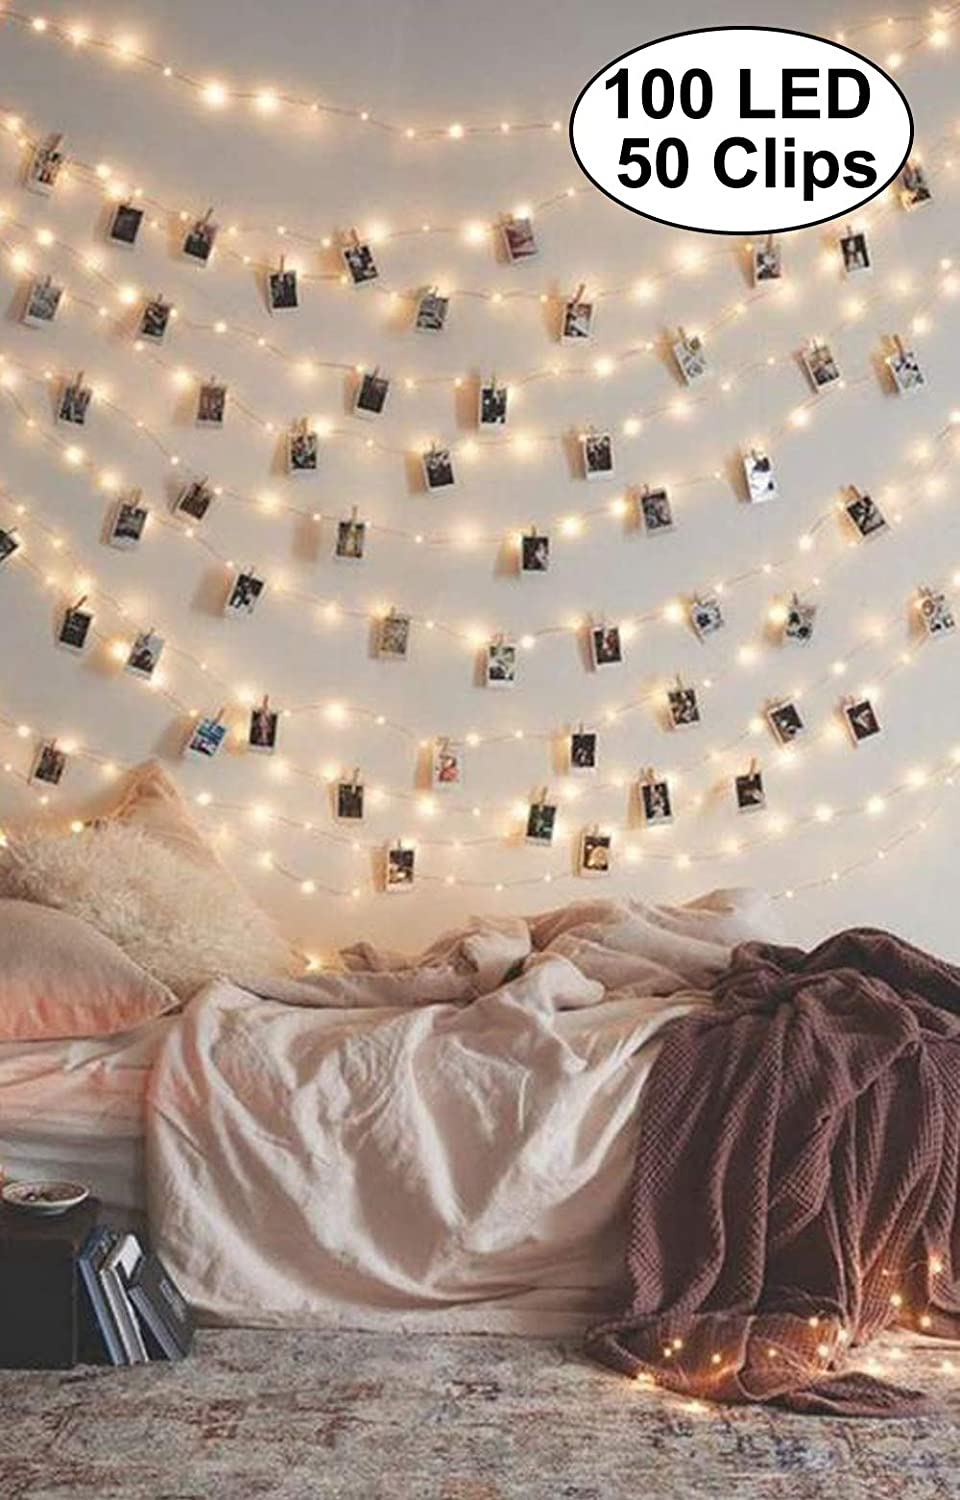 Decute Photo Clip String Lights Holder 100 LED 33FT Starry Fairy Lights with 50 Clear Clips for Hanging Pictures Cards Memos USB Powered with Switch Perfect for Bedroom Wedding Dorm Christmas Decor